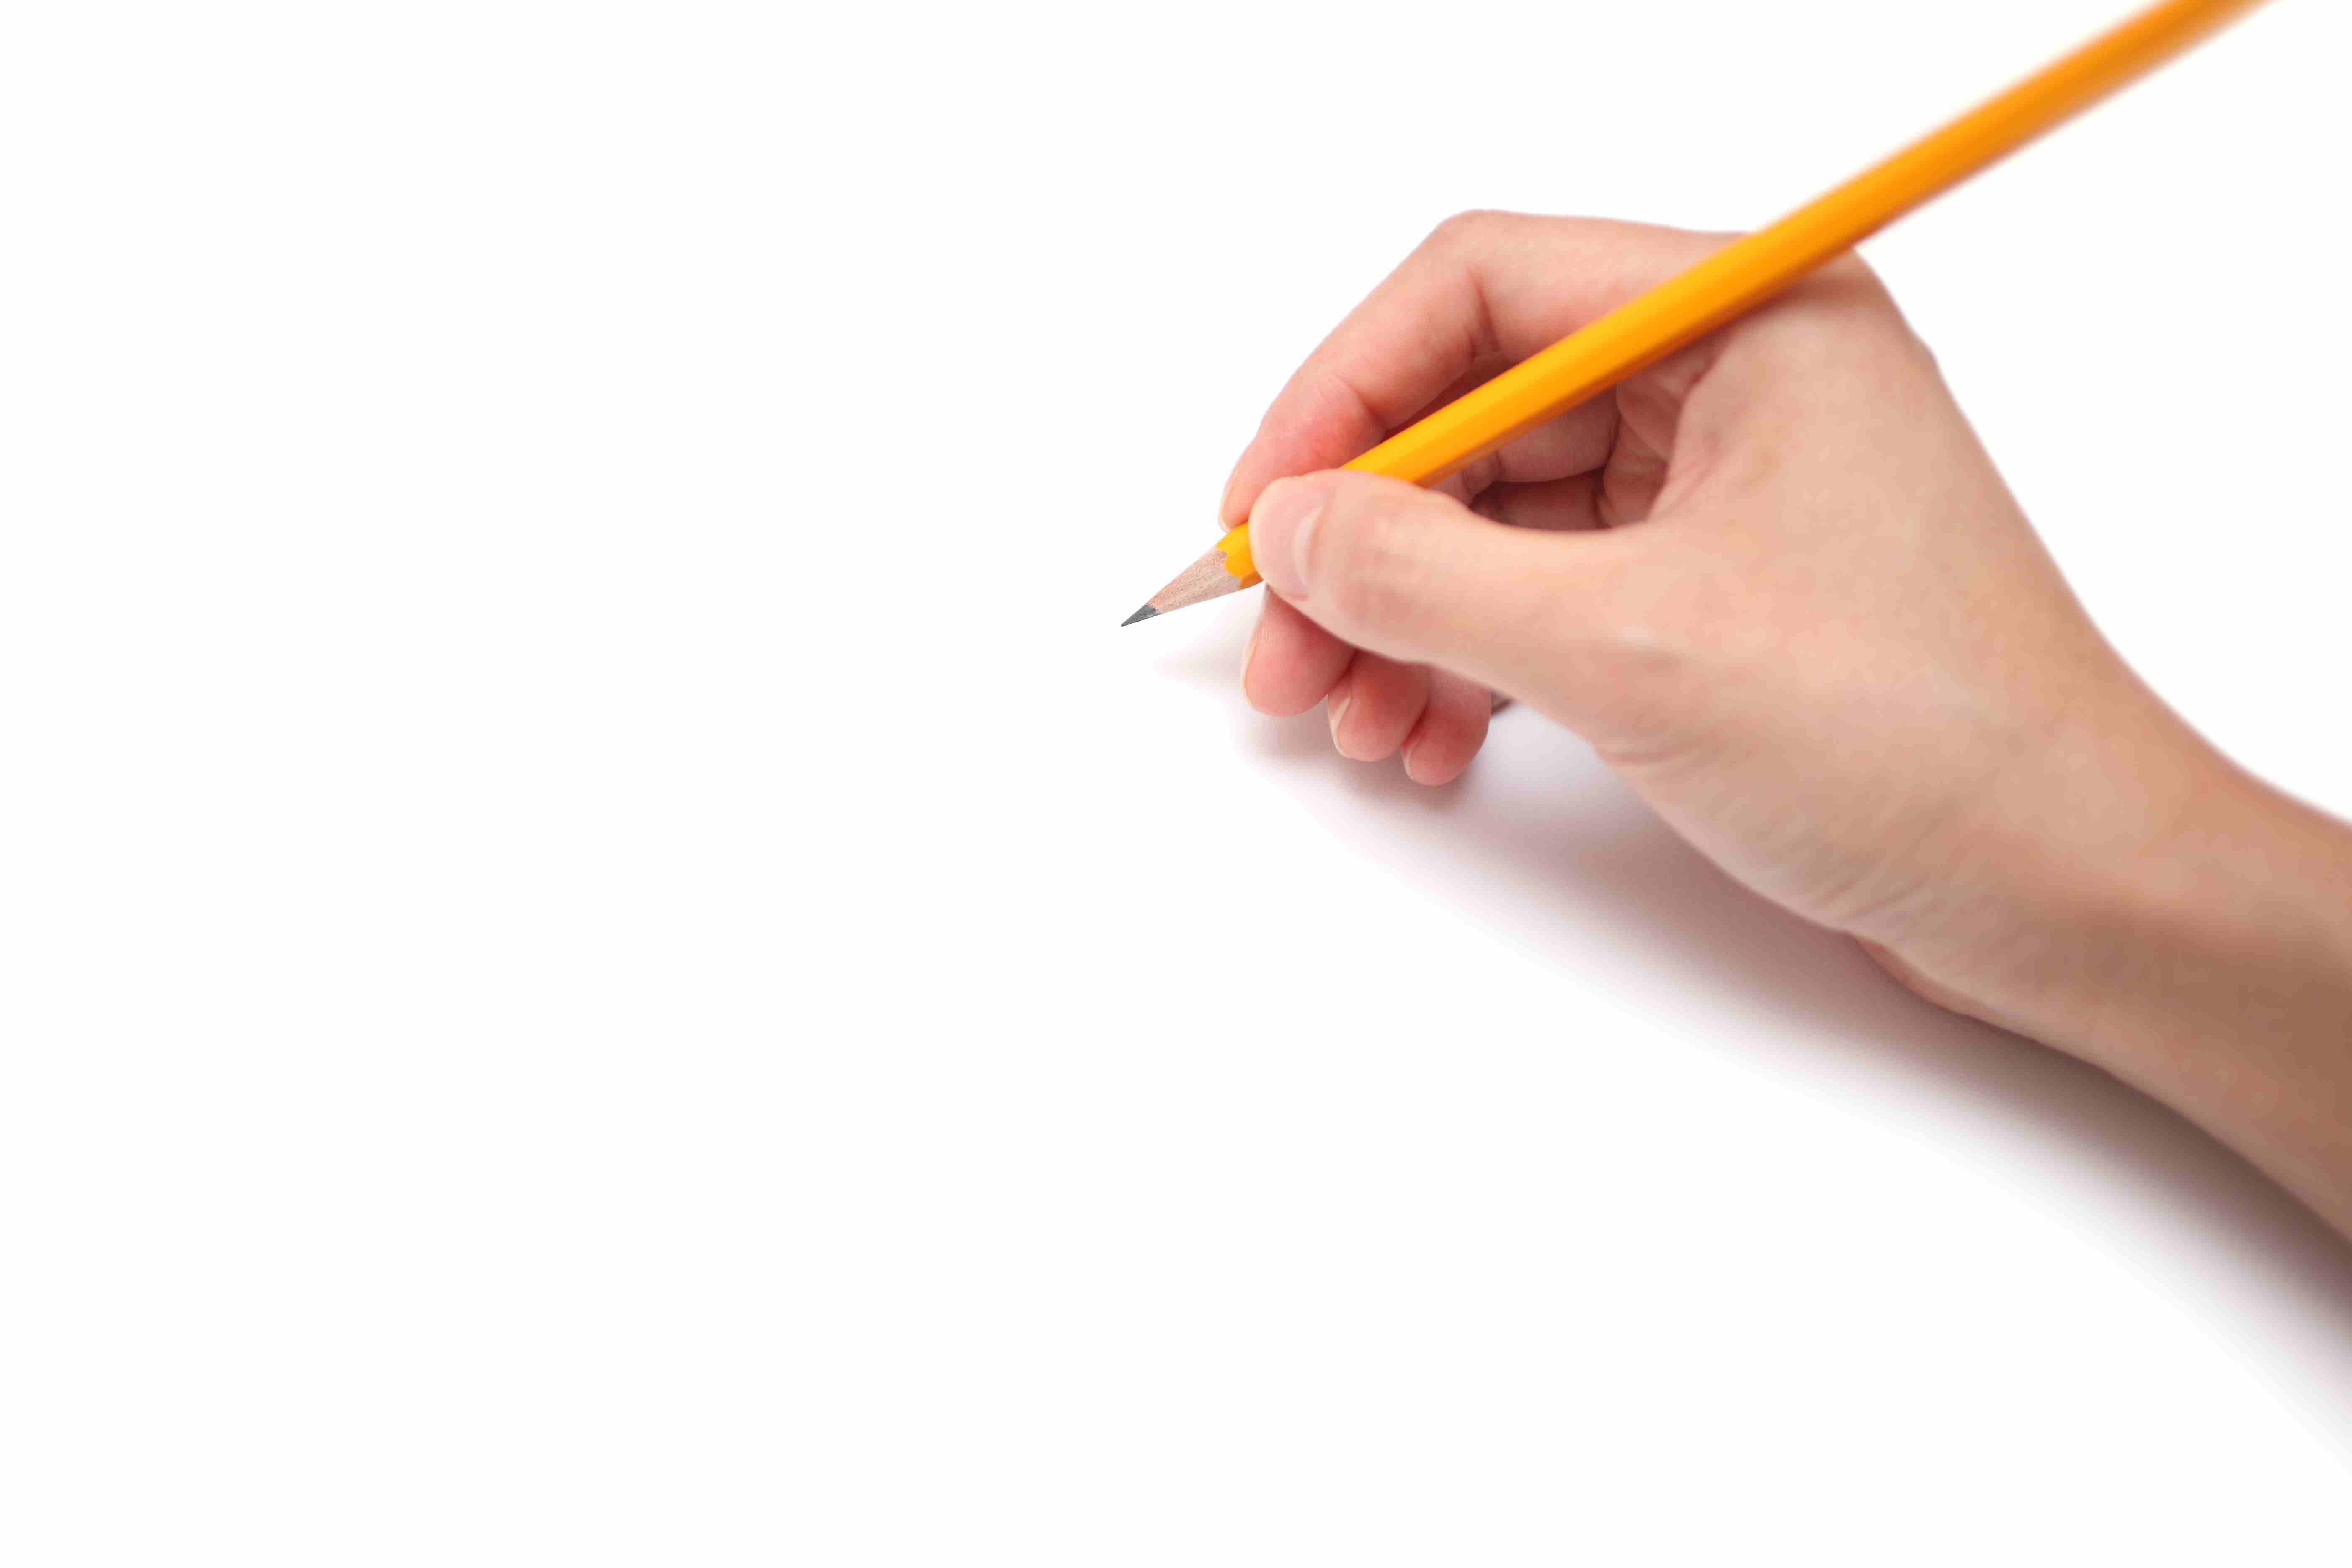 A hand is holding a pencil ready to draw isolated on white background